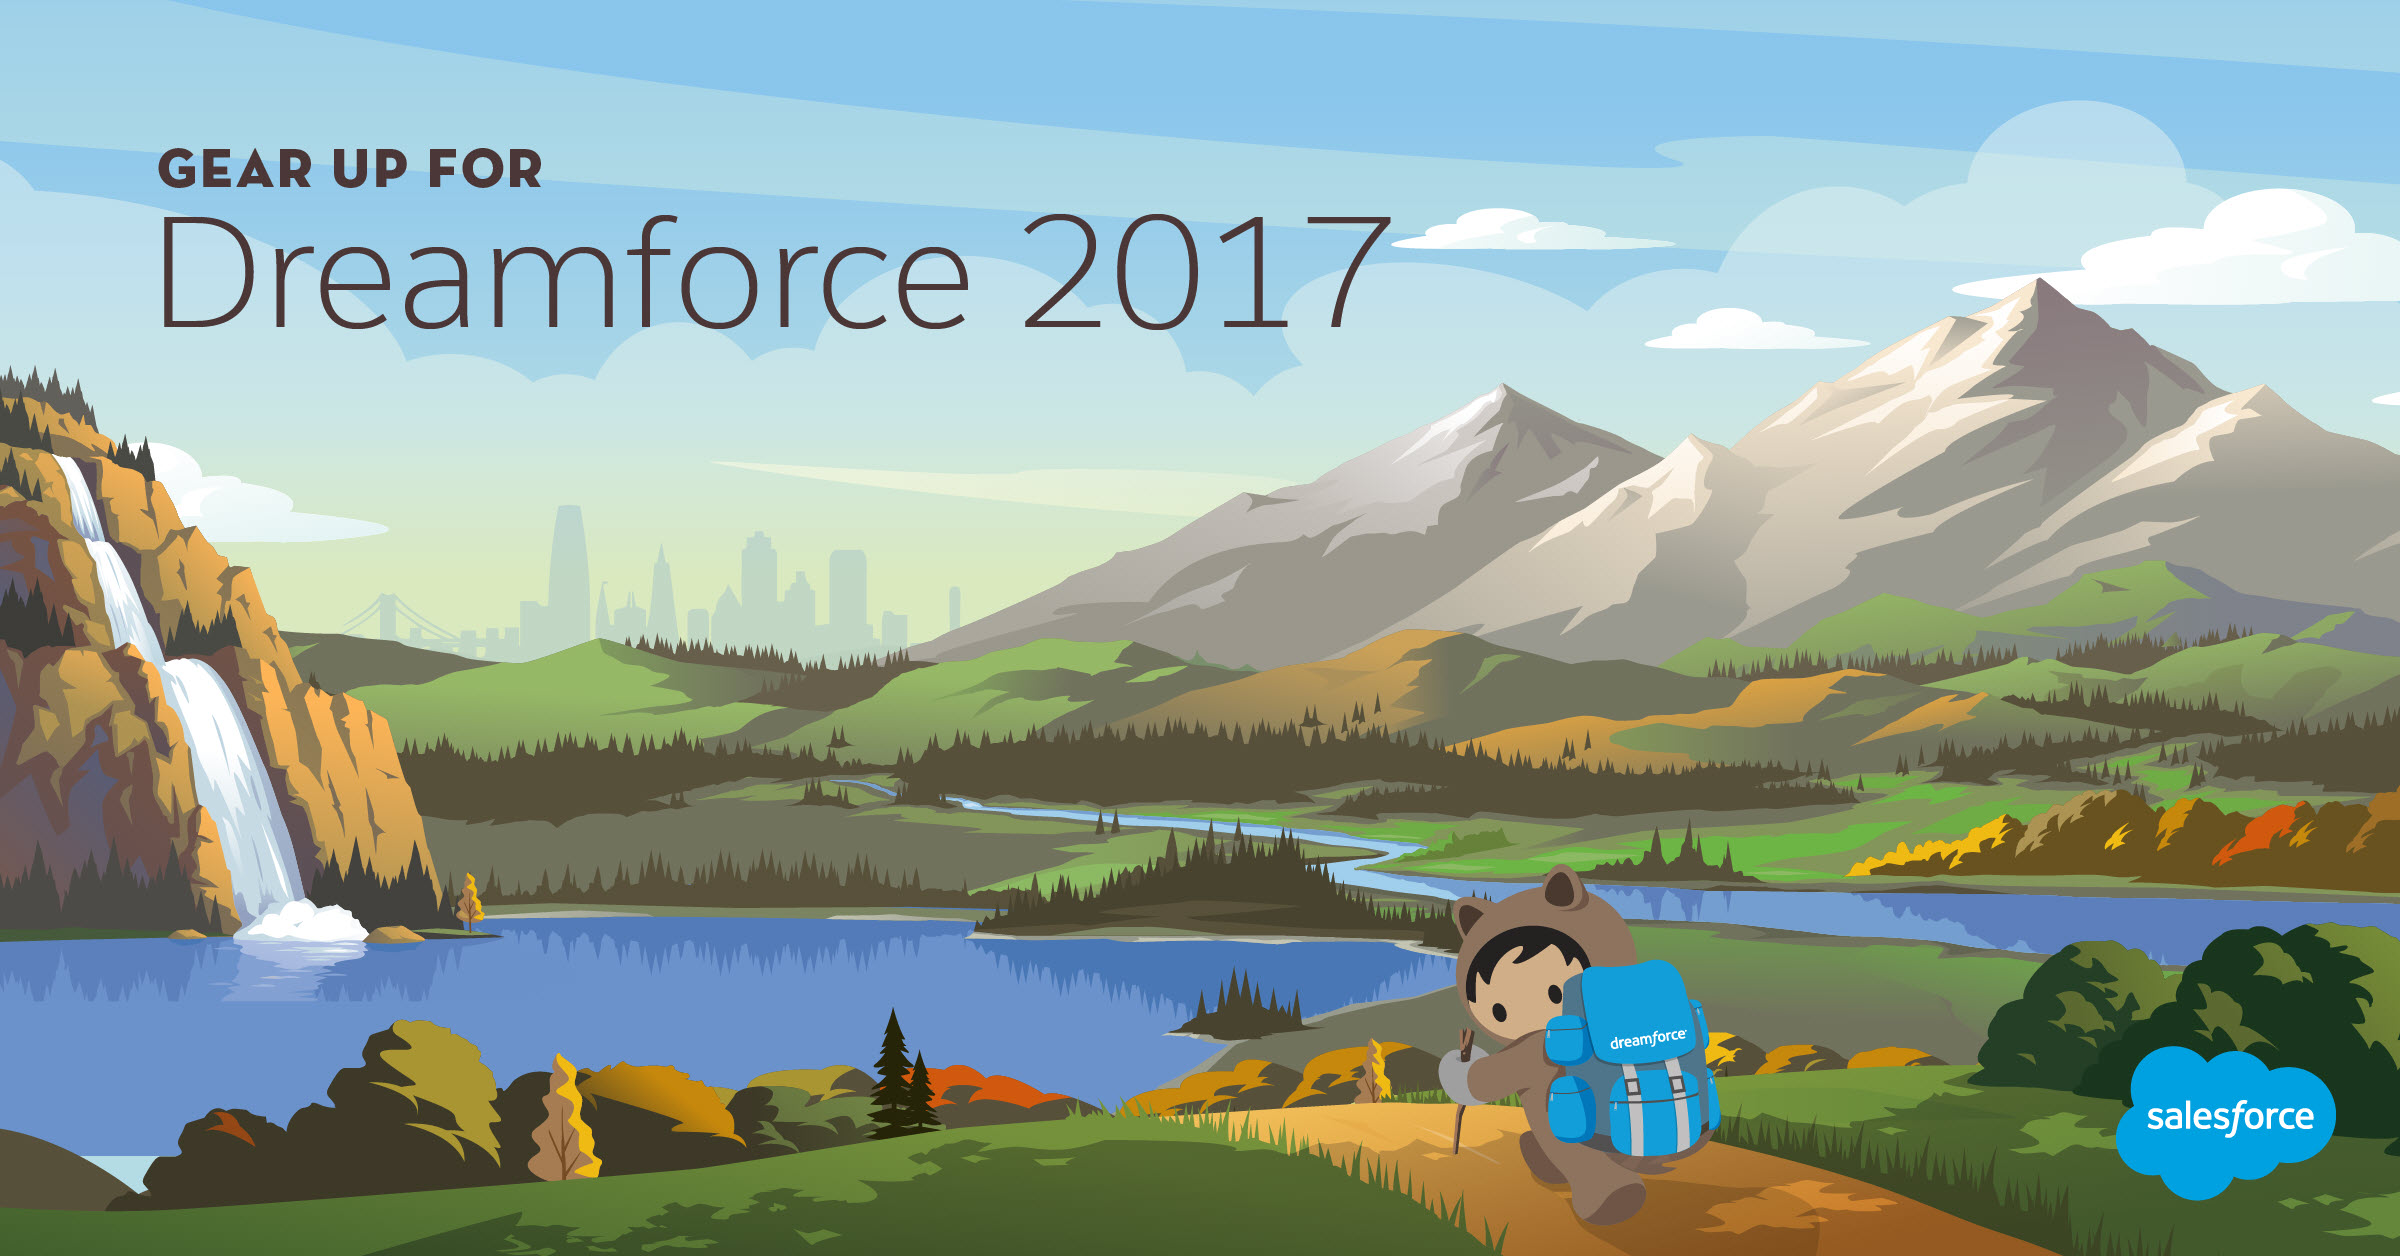 Dreamforce 2017: Gear up for the Biggest Customer Service Event of the Year